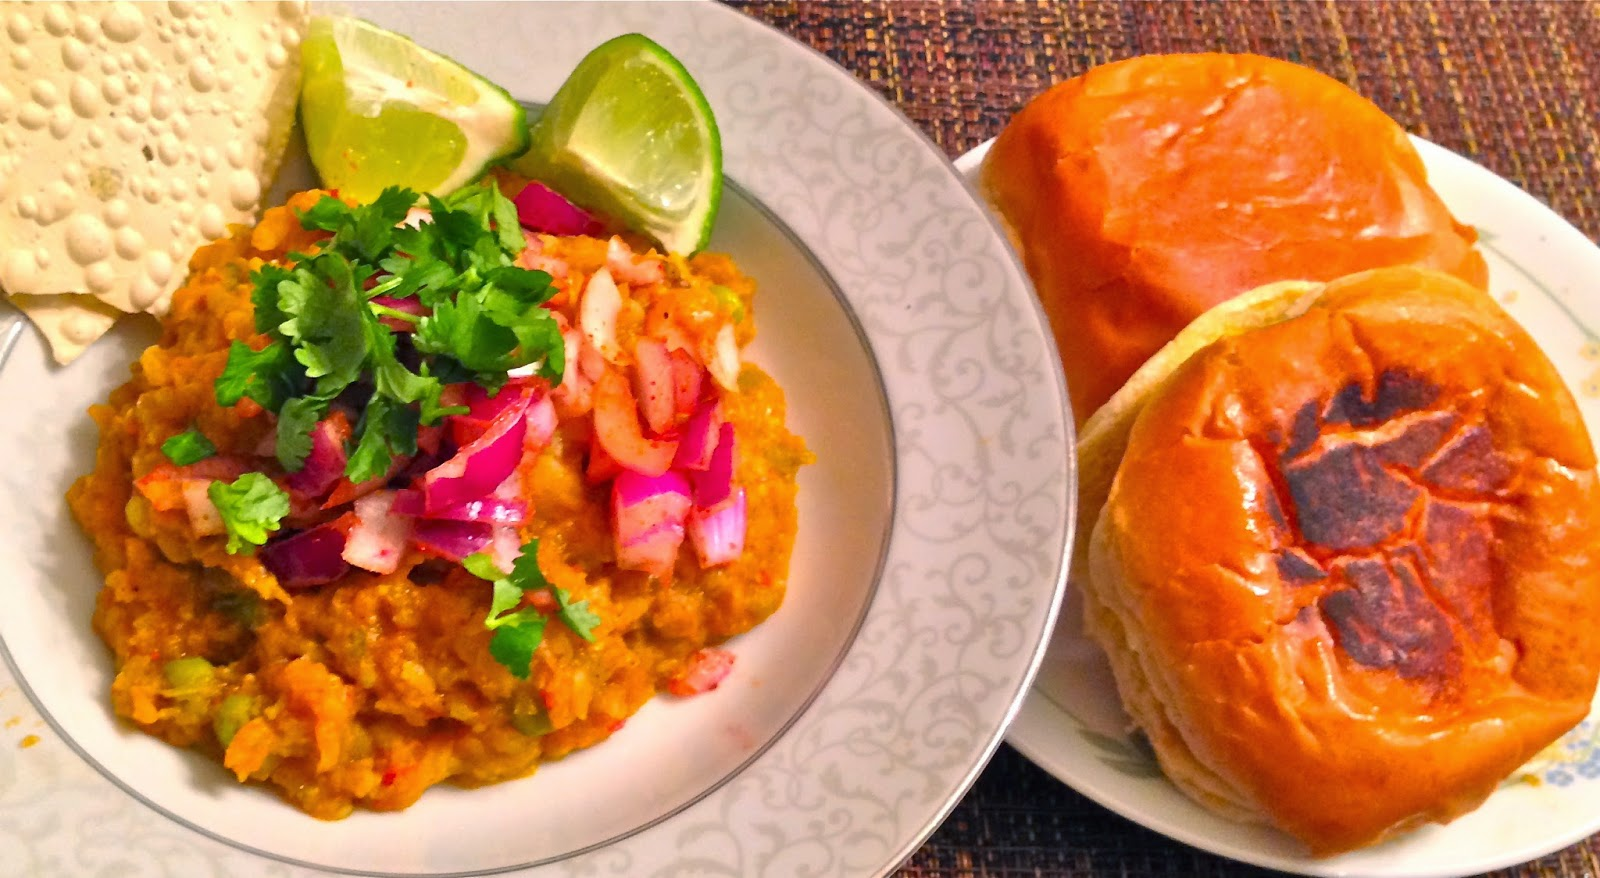 Pav Bhaji, a blend of vegetables cooked in tomato gravy